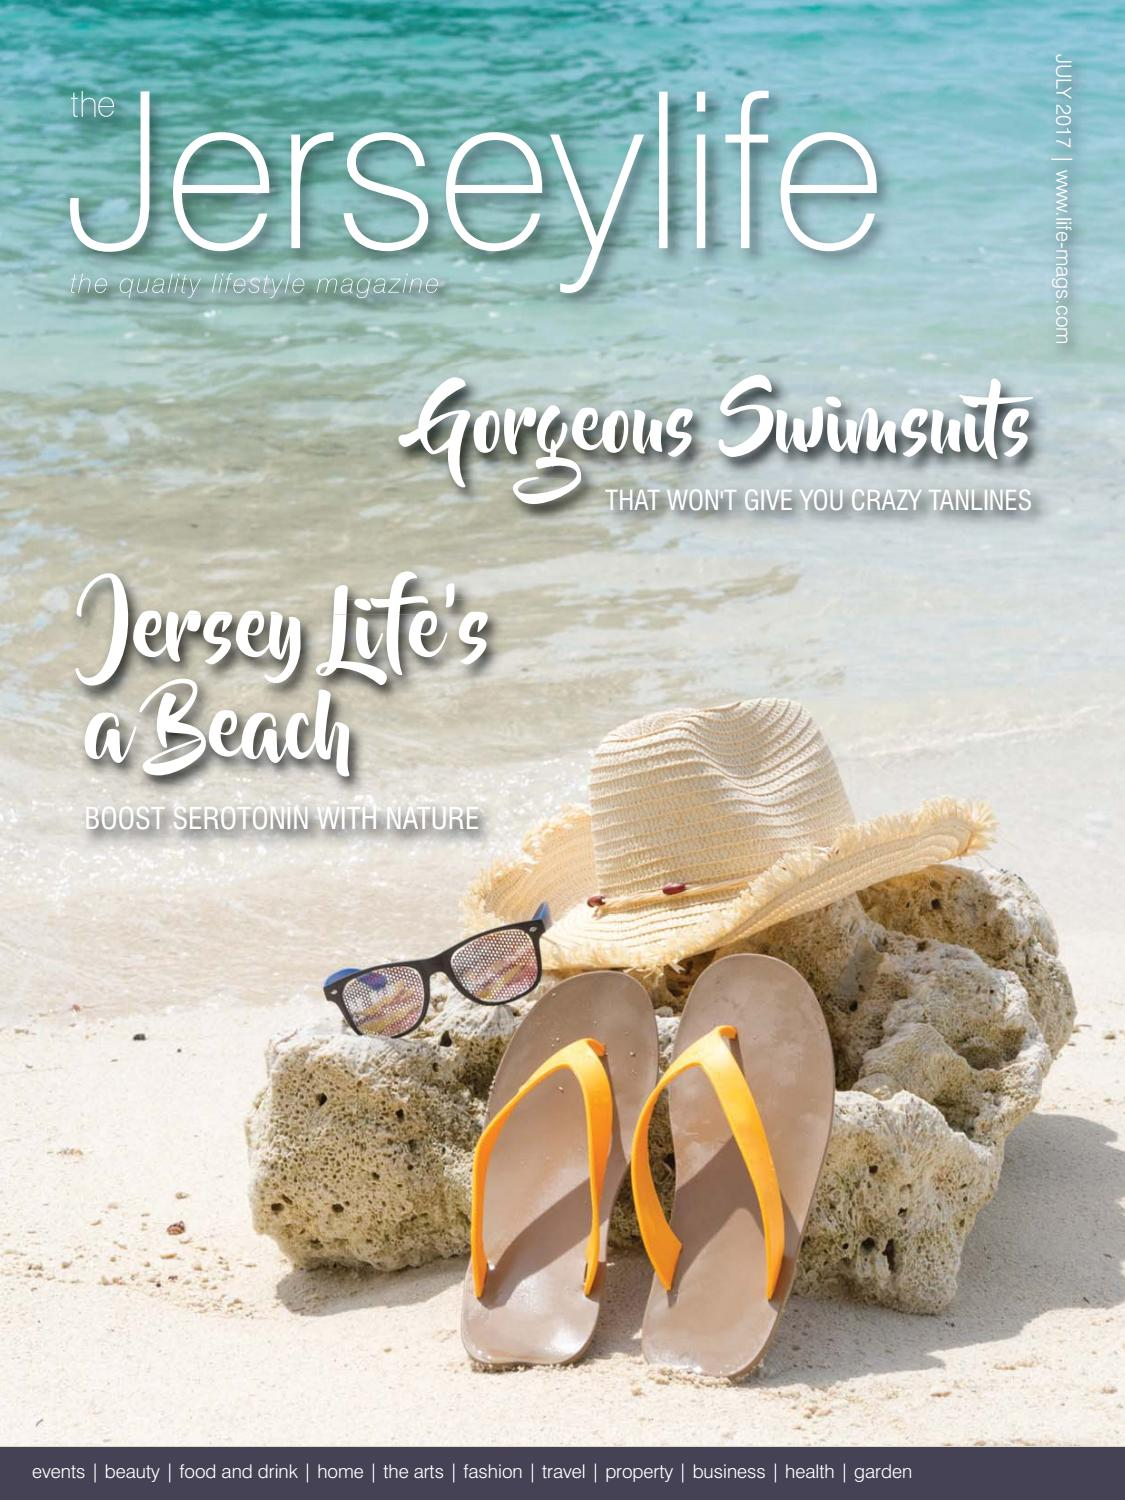 THE JERSEY LIFE - JULY ISSUE by The Jersey Life - issuu